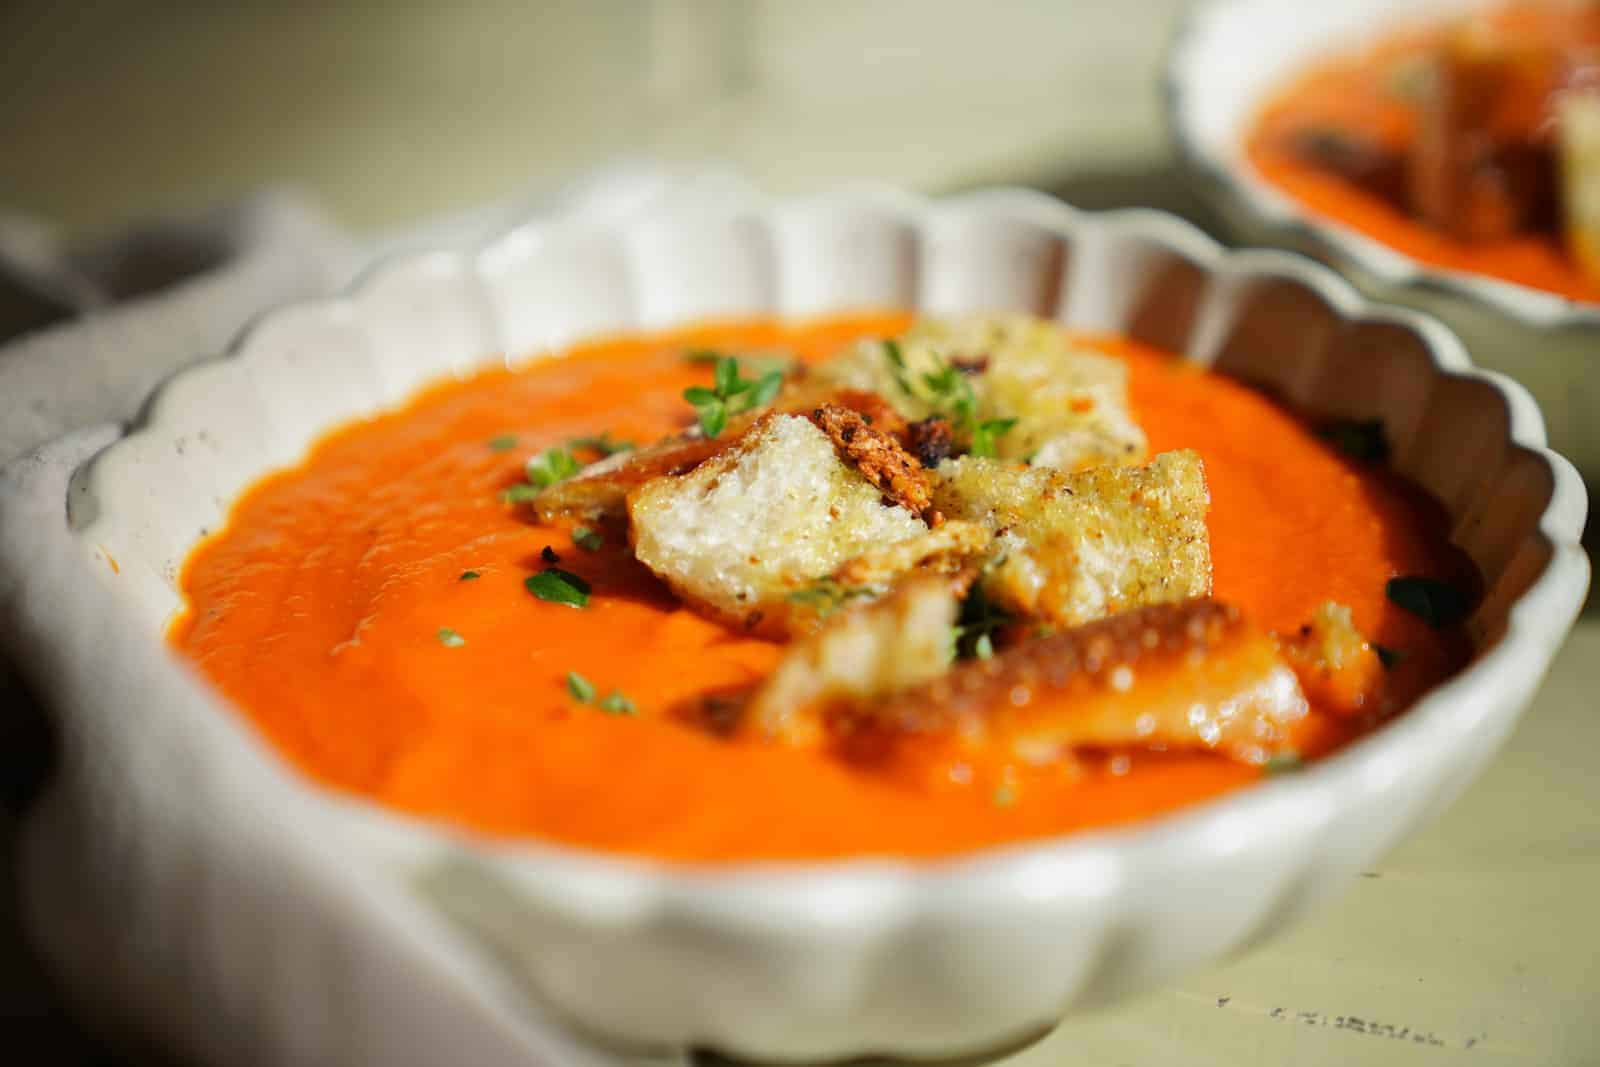 Side angle of Roasted Tomato Soup in white bowl